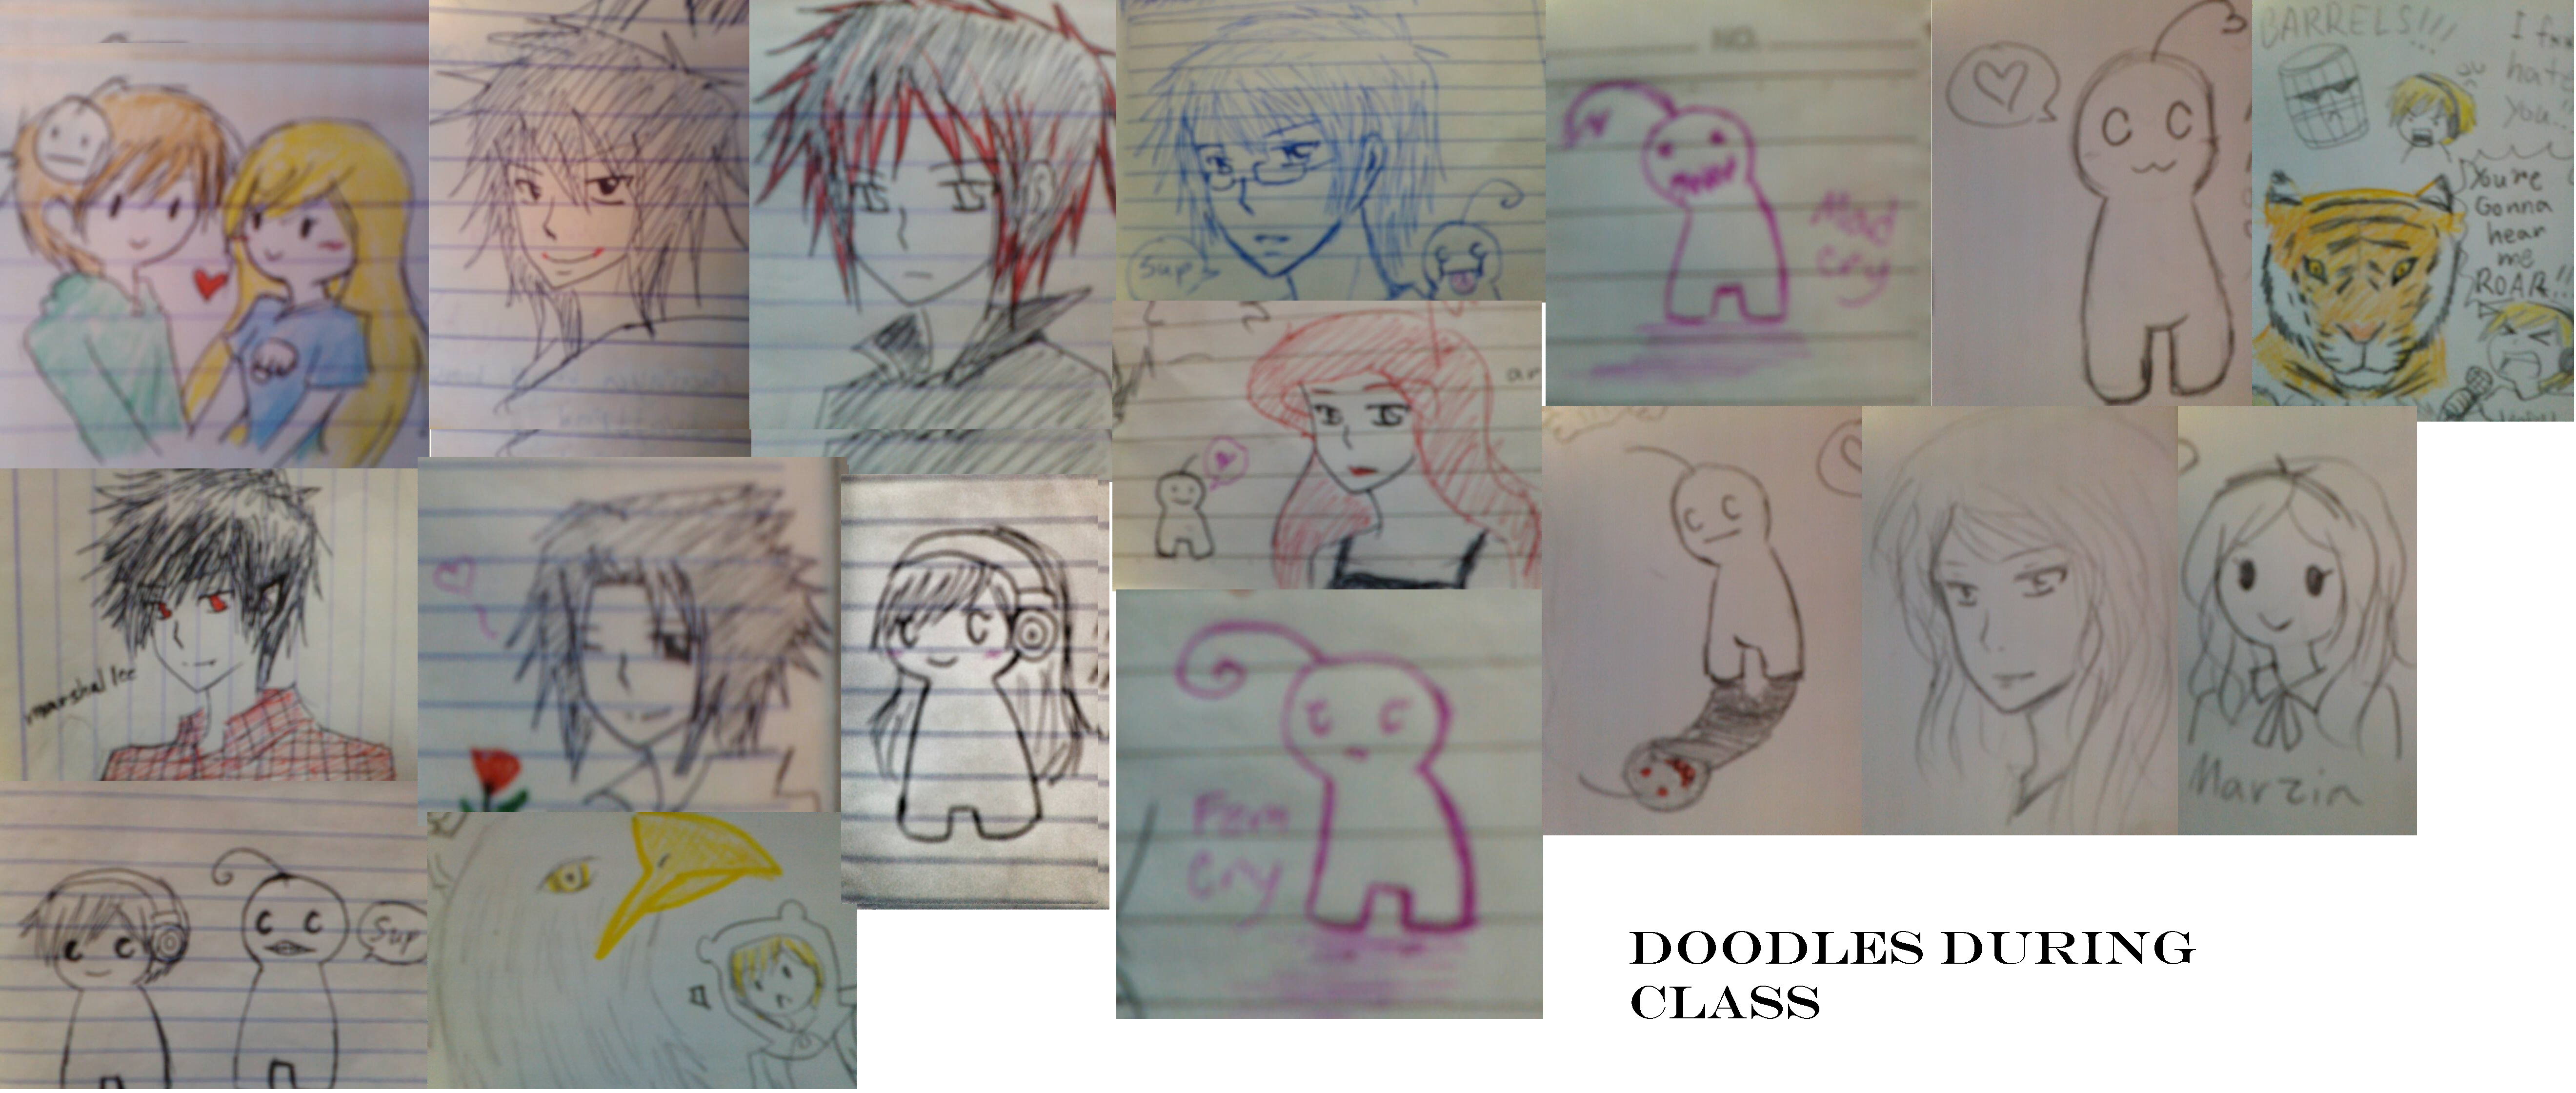 Doodles Drawing During Class By Florano On DeviantArt